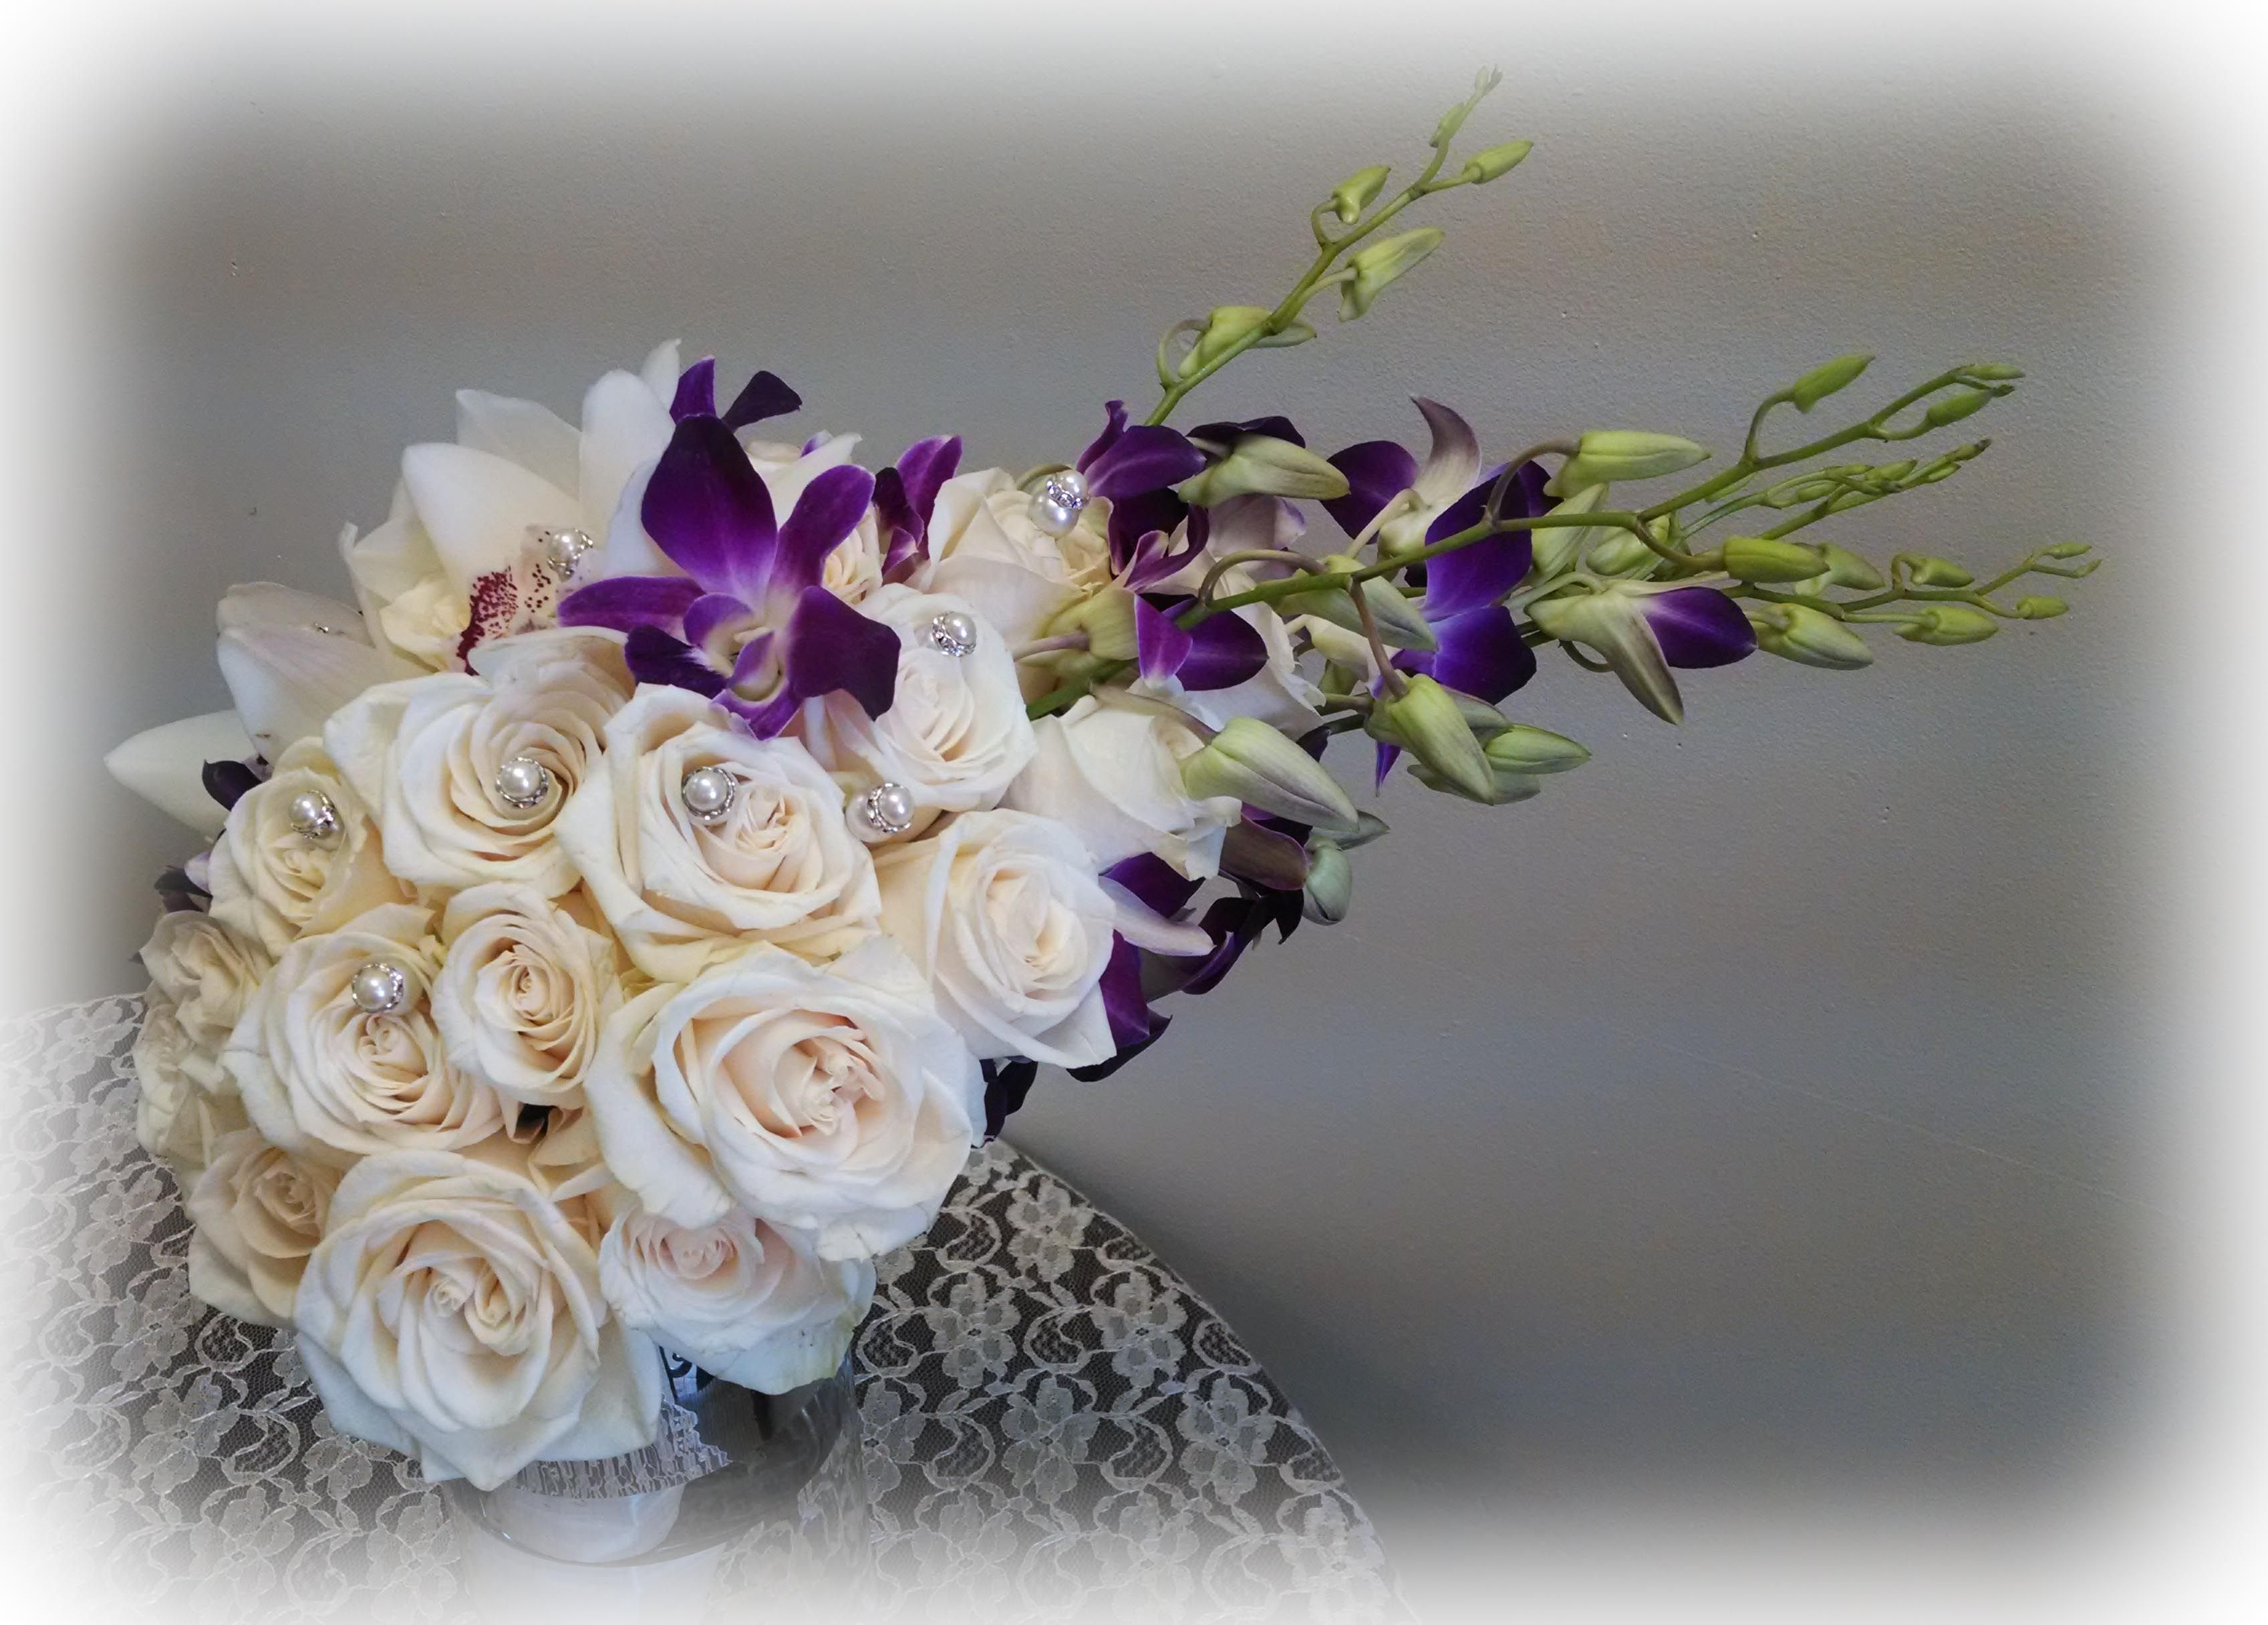 White roses and purple orchids in a spread design with perls